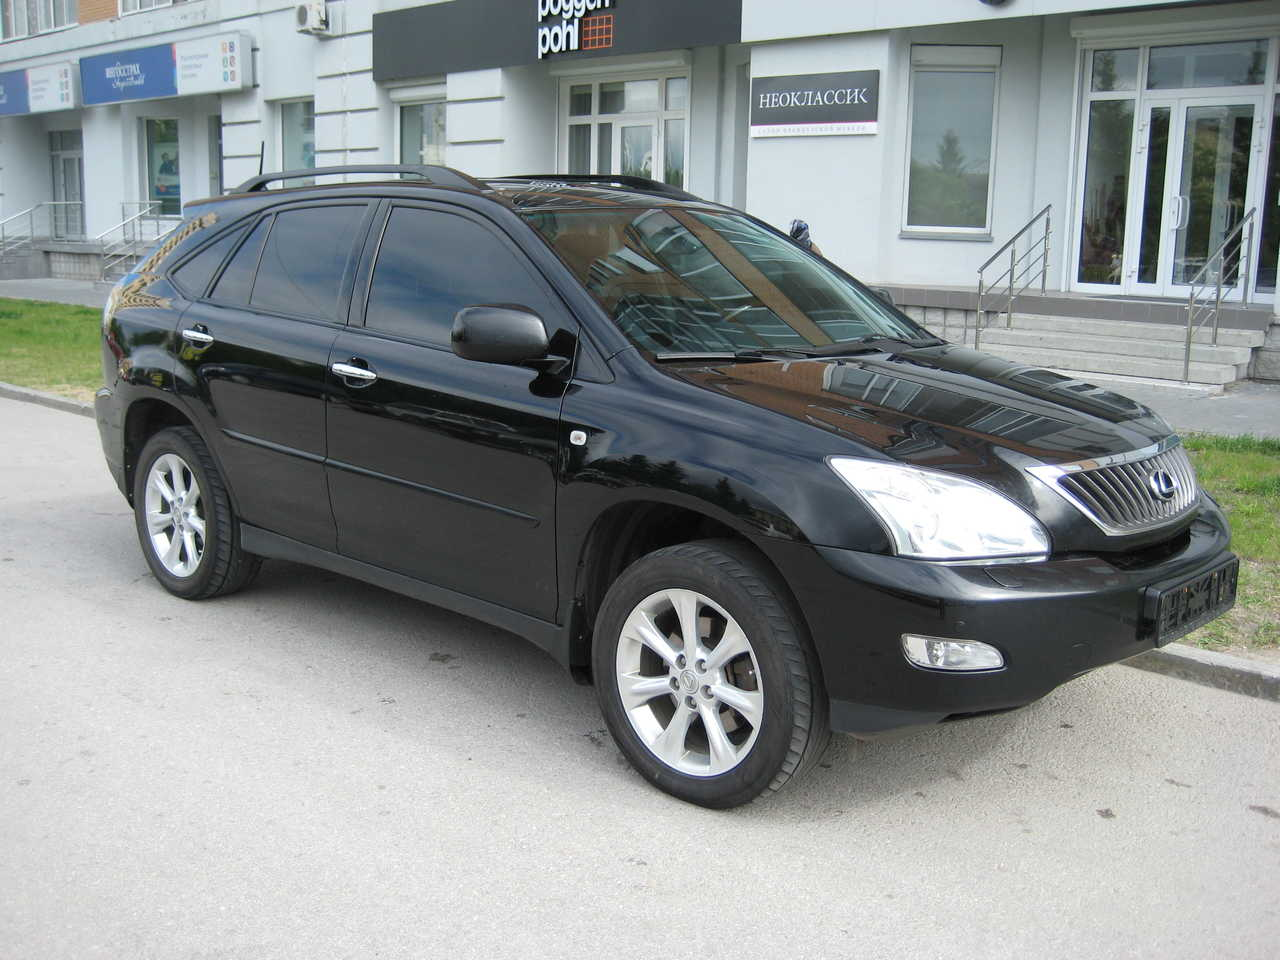 used 2008 lexus rx350 photos 3500cc gasoline automatic for sale. Black Bedroom Furniture Sets. Home Design Ideas